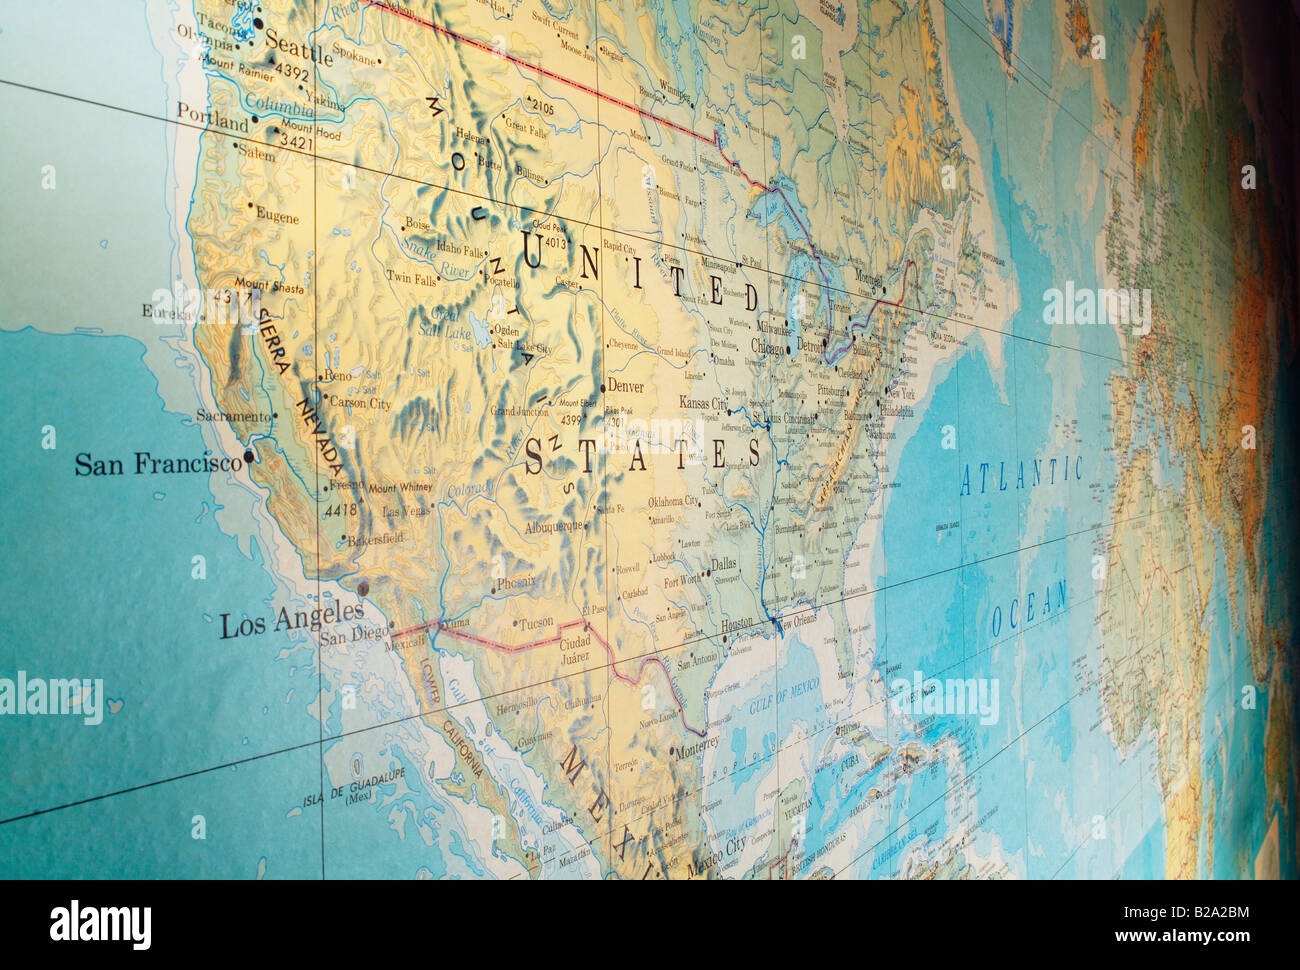 Old stained and yellowed wall map from the 1960s. United states in the foreground EDITORIAL USE ONLY - Stock Image